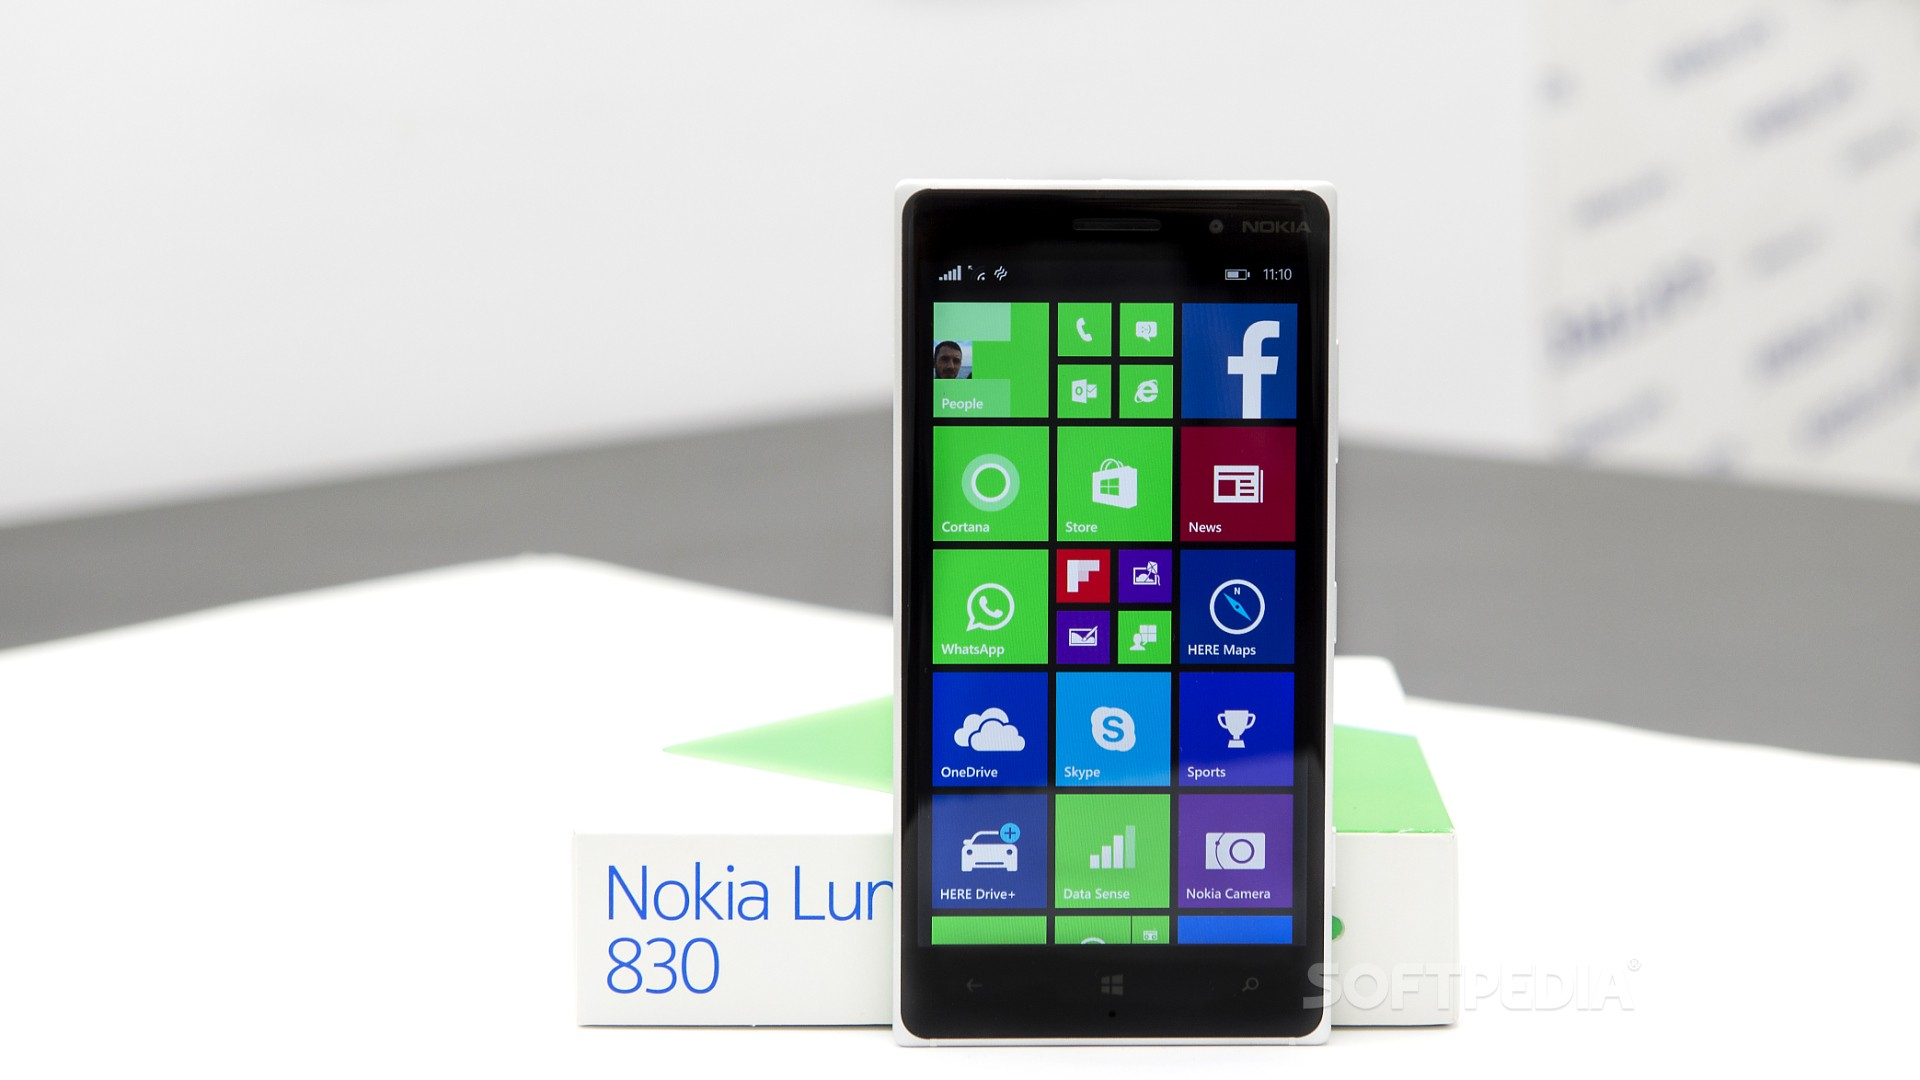 microsoft expected sales of budget windows phone devices to be bigger